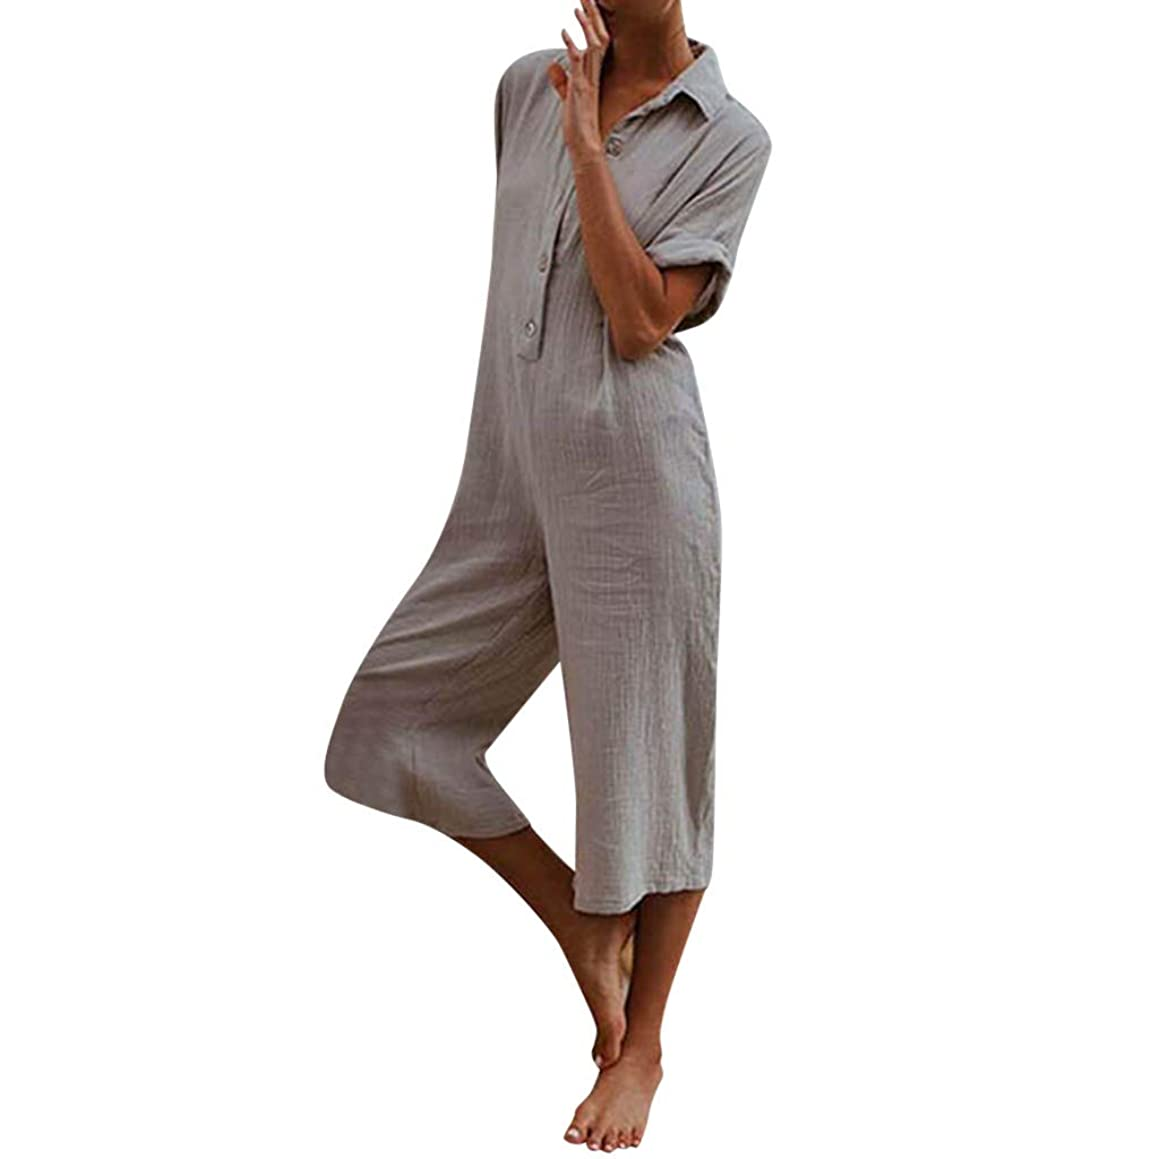 Qingell Women's Summer Strappy Jumpsuits Overalls Casual Harem Pants Wide Leg Low Crotch Loose Trousers